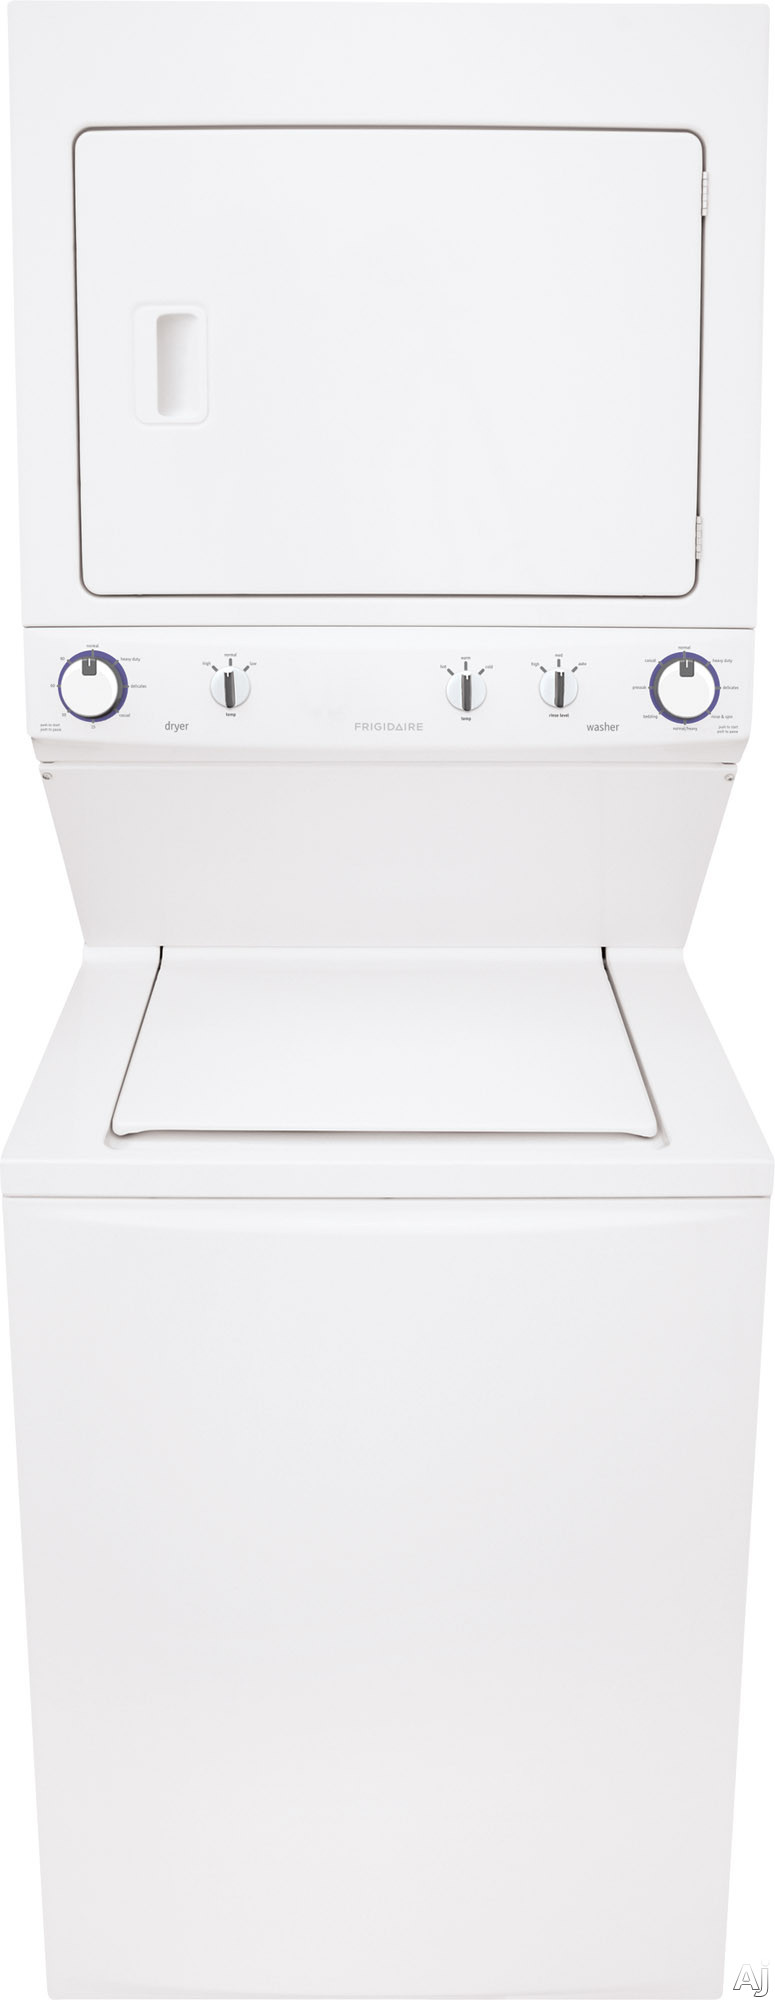 FRIGIDAIRE FFLE3911QW Washer Dryer Combo, 240V, 22A, White 282219931